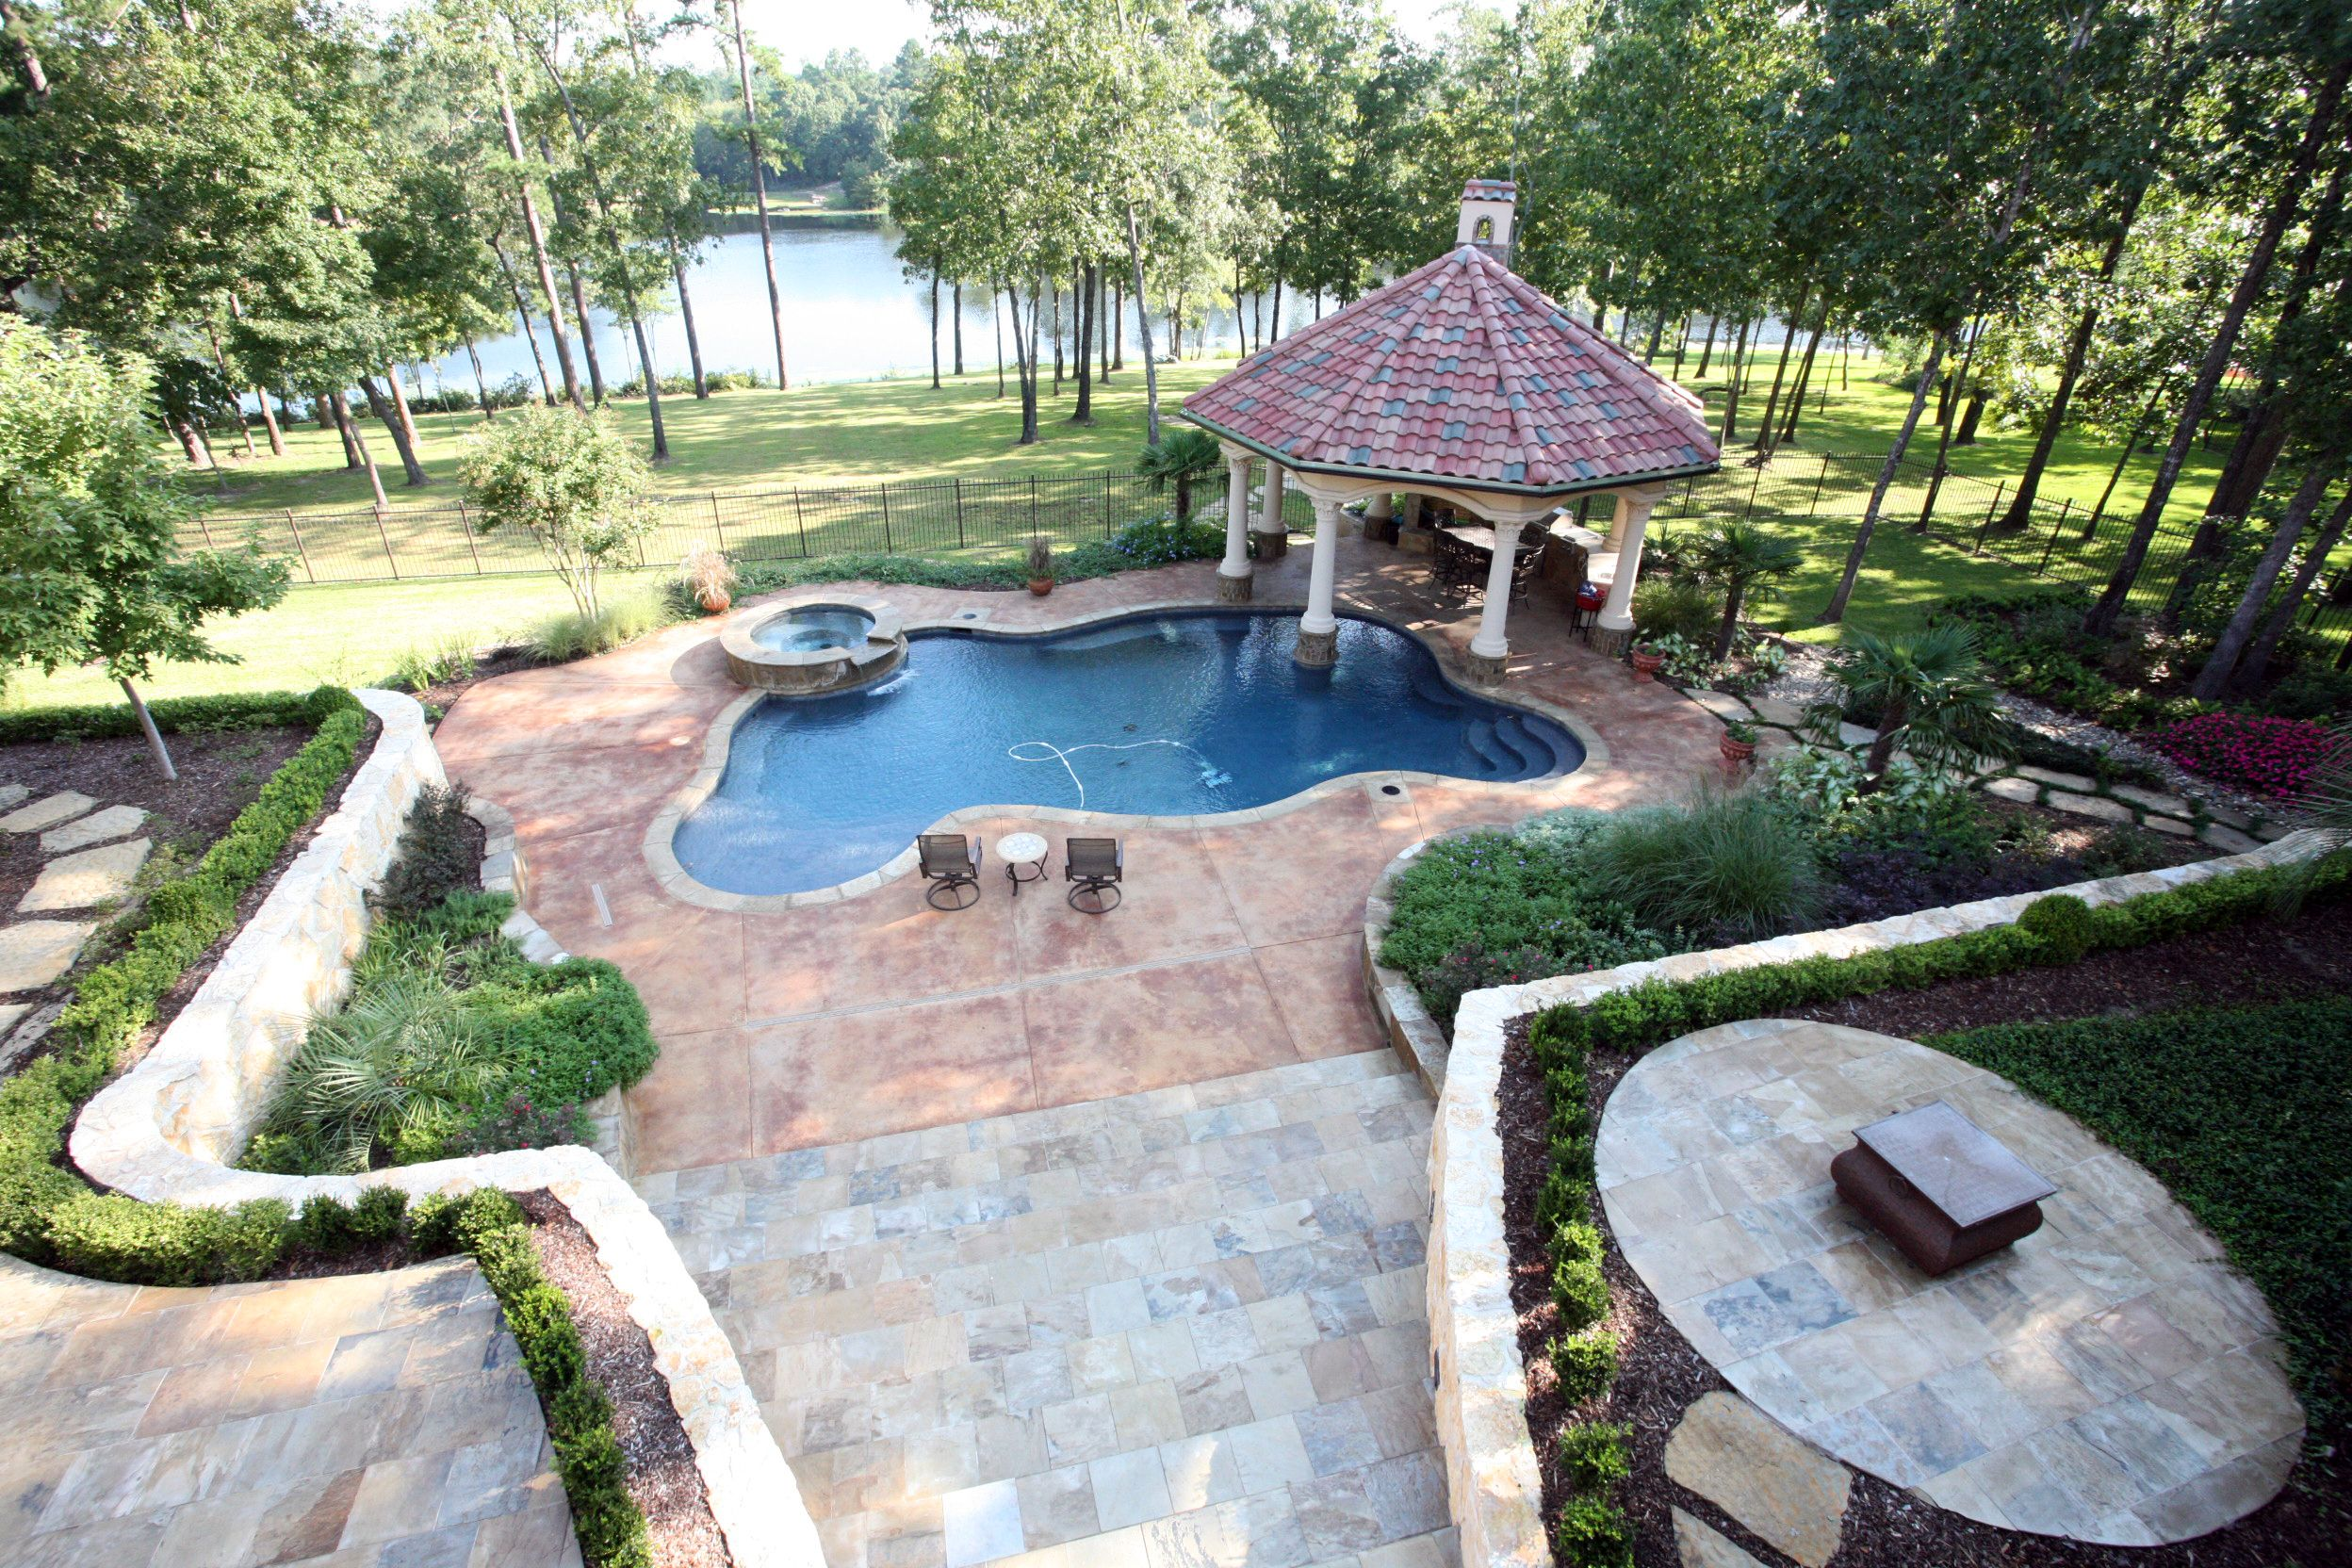 Backyard Pool And Outdoor Kitchen Designs. Mediterranean Style ... on small garden spa, backyard spa, outdoor swimming pool with spa,